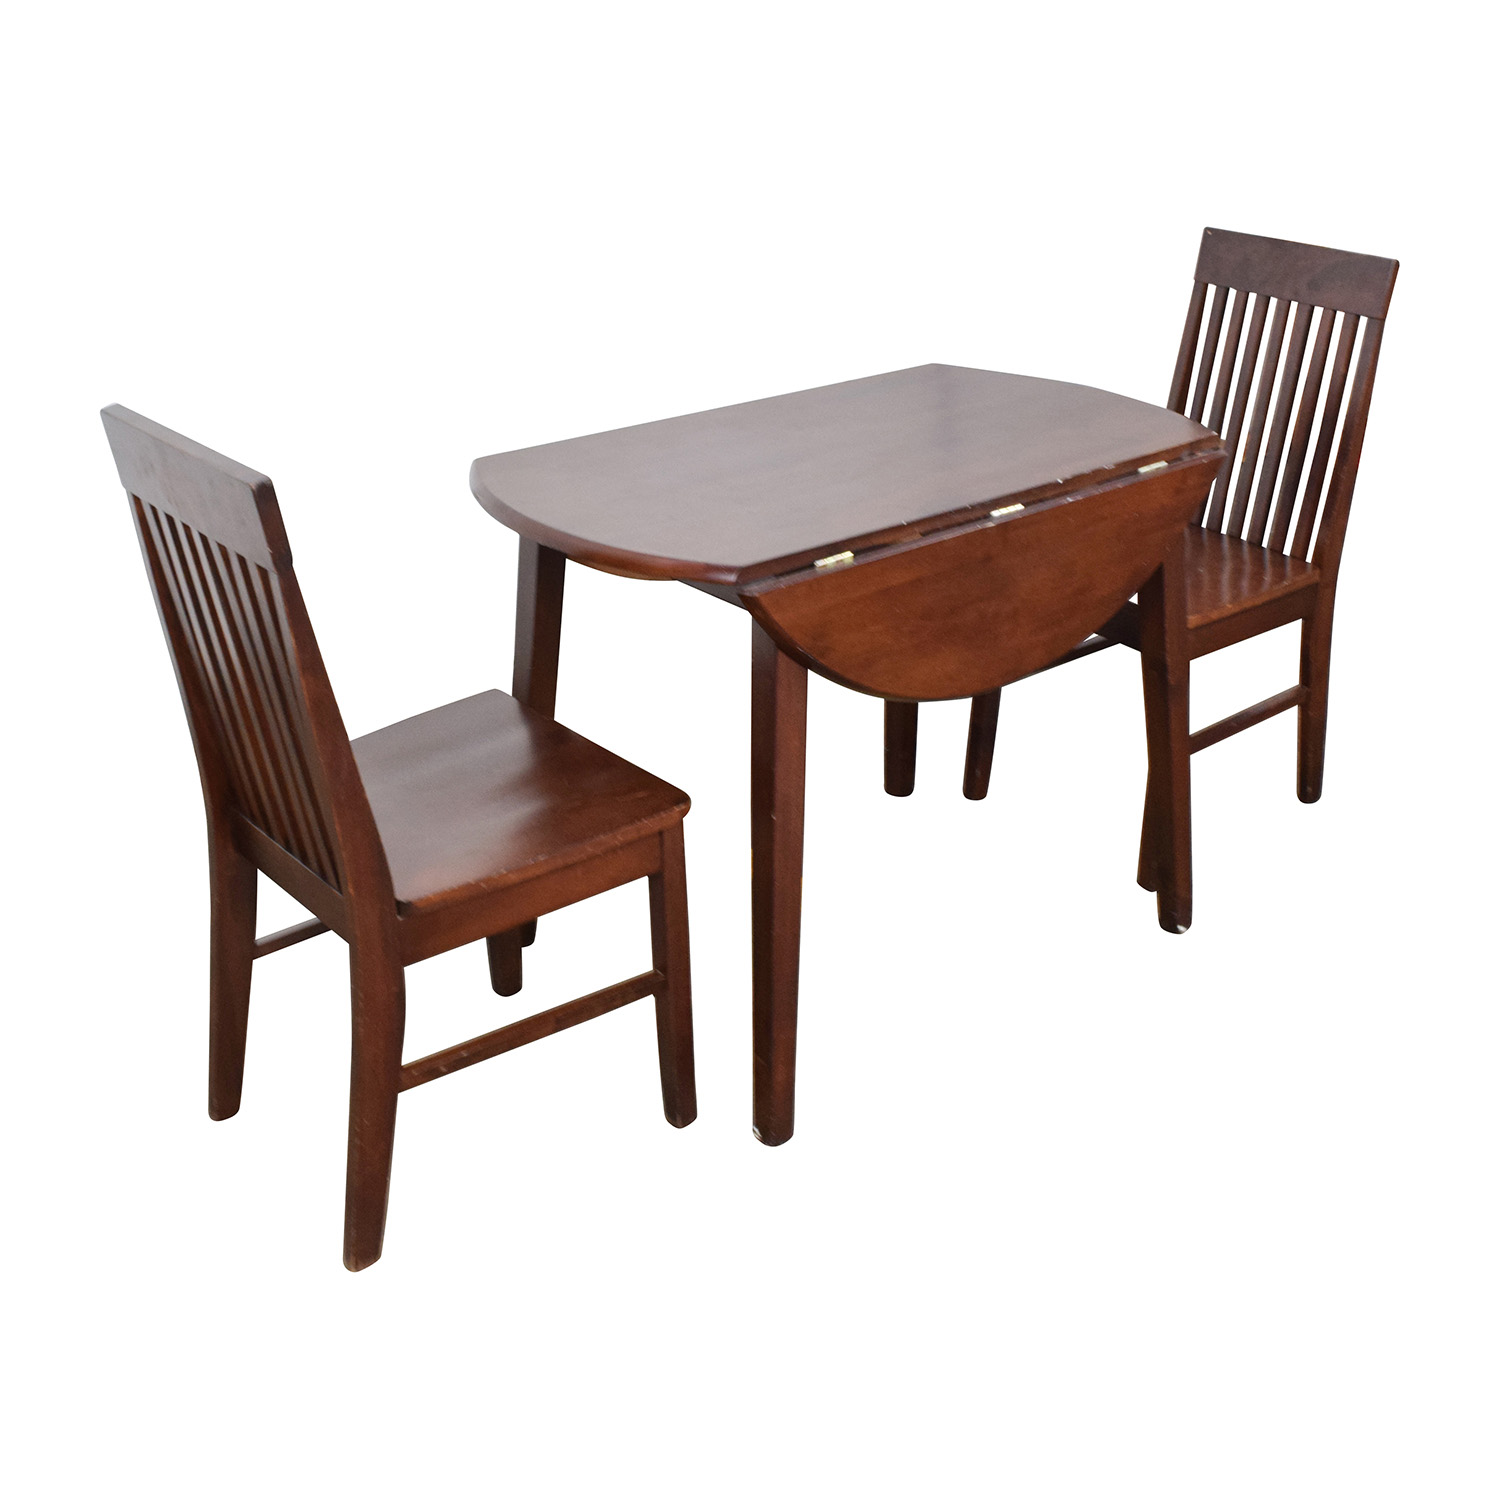 Tables Buy: Round Dining Table With Folding Sides And Chairs